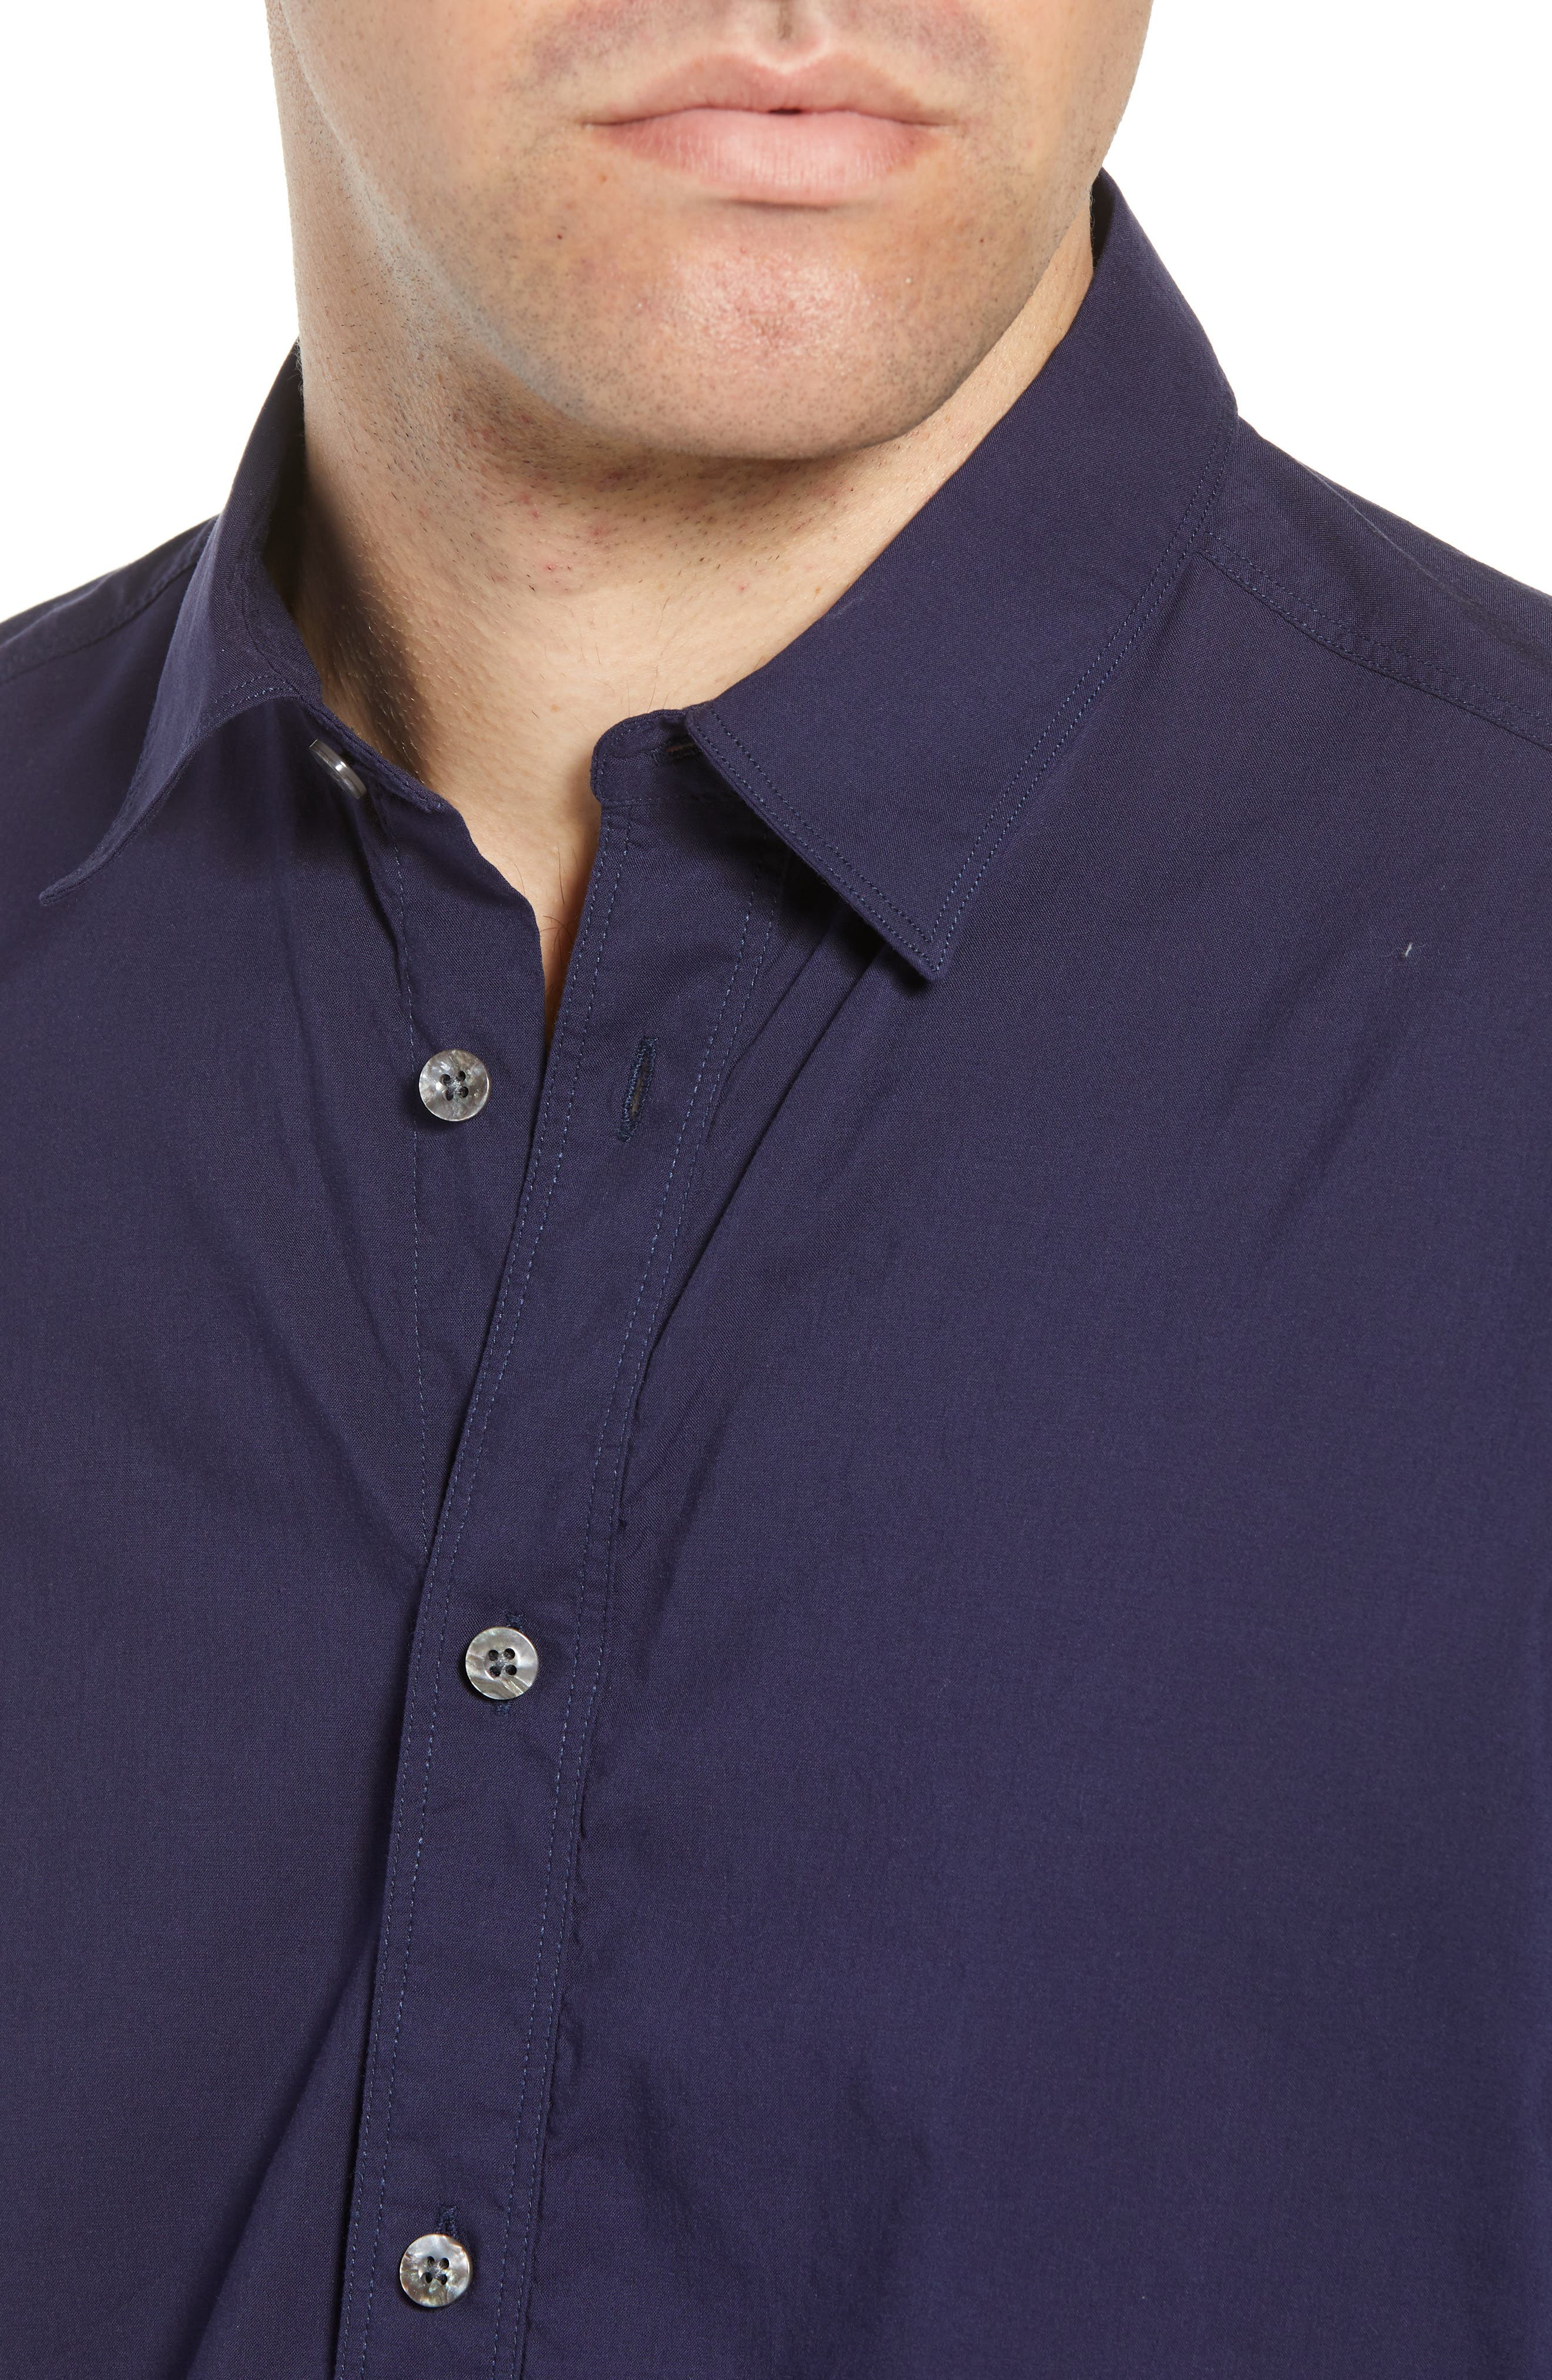 Pacifica Regular Fit Solid Sport Shirt,                             Alternate thumbnail 2, color,                             Navy